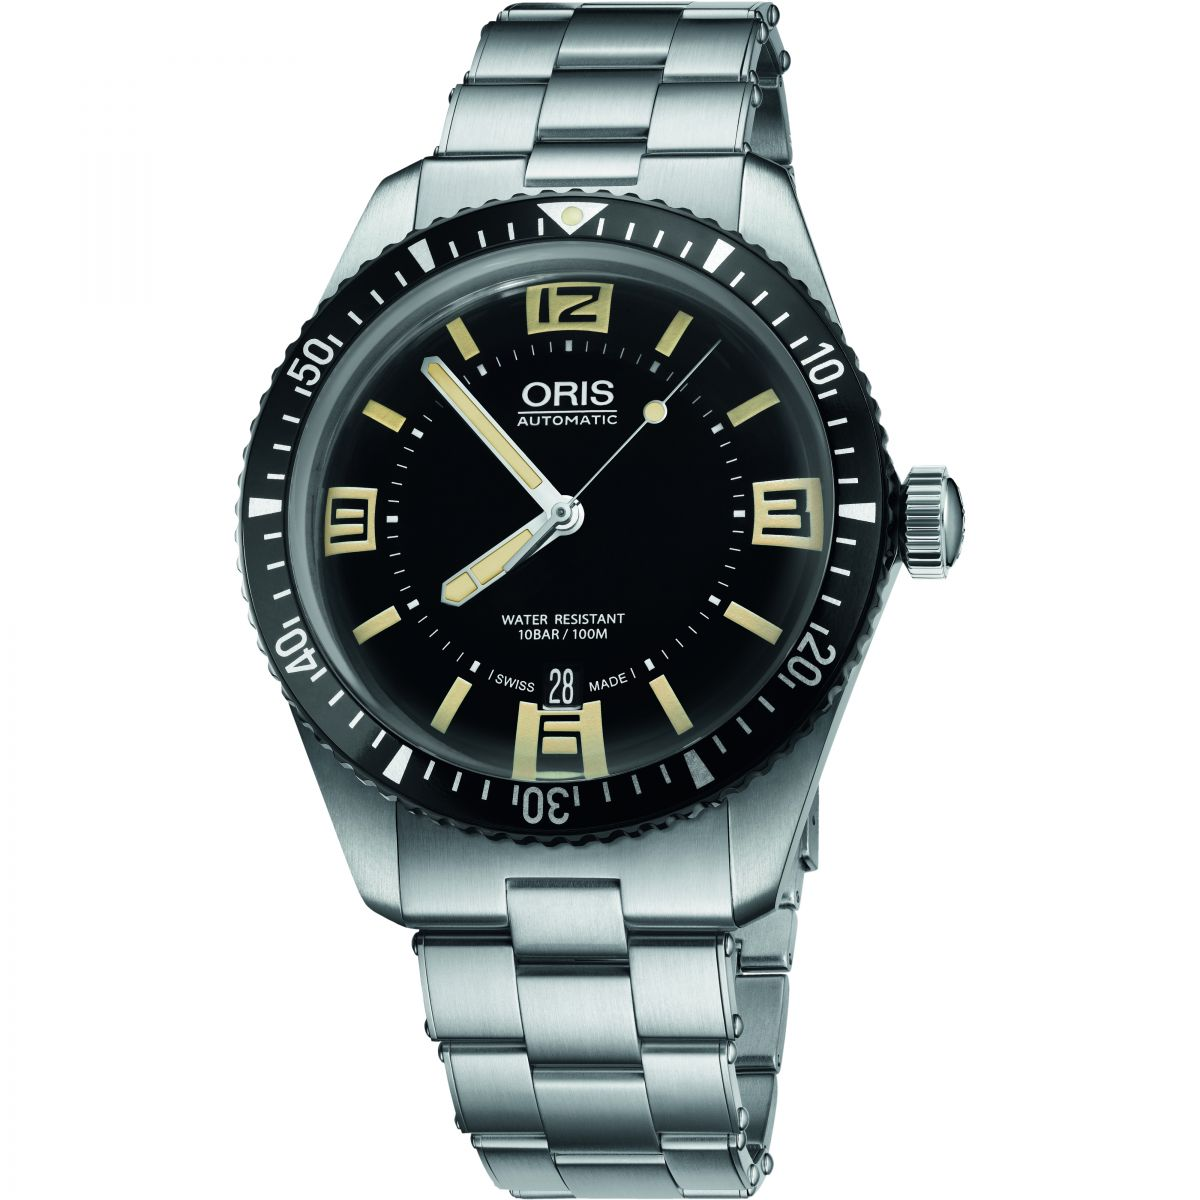 oris big calibre crown watches image mens propilot automatic watch s men